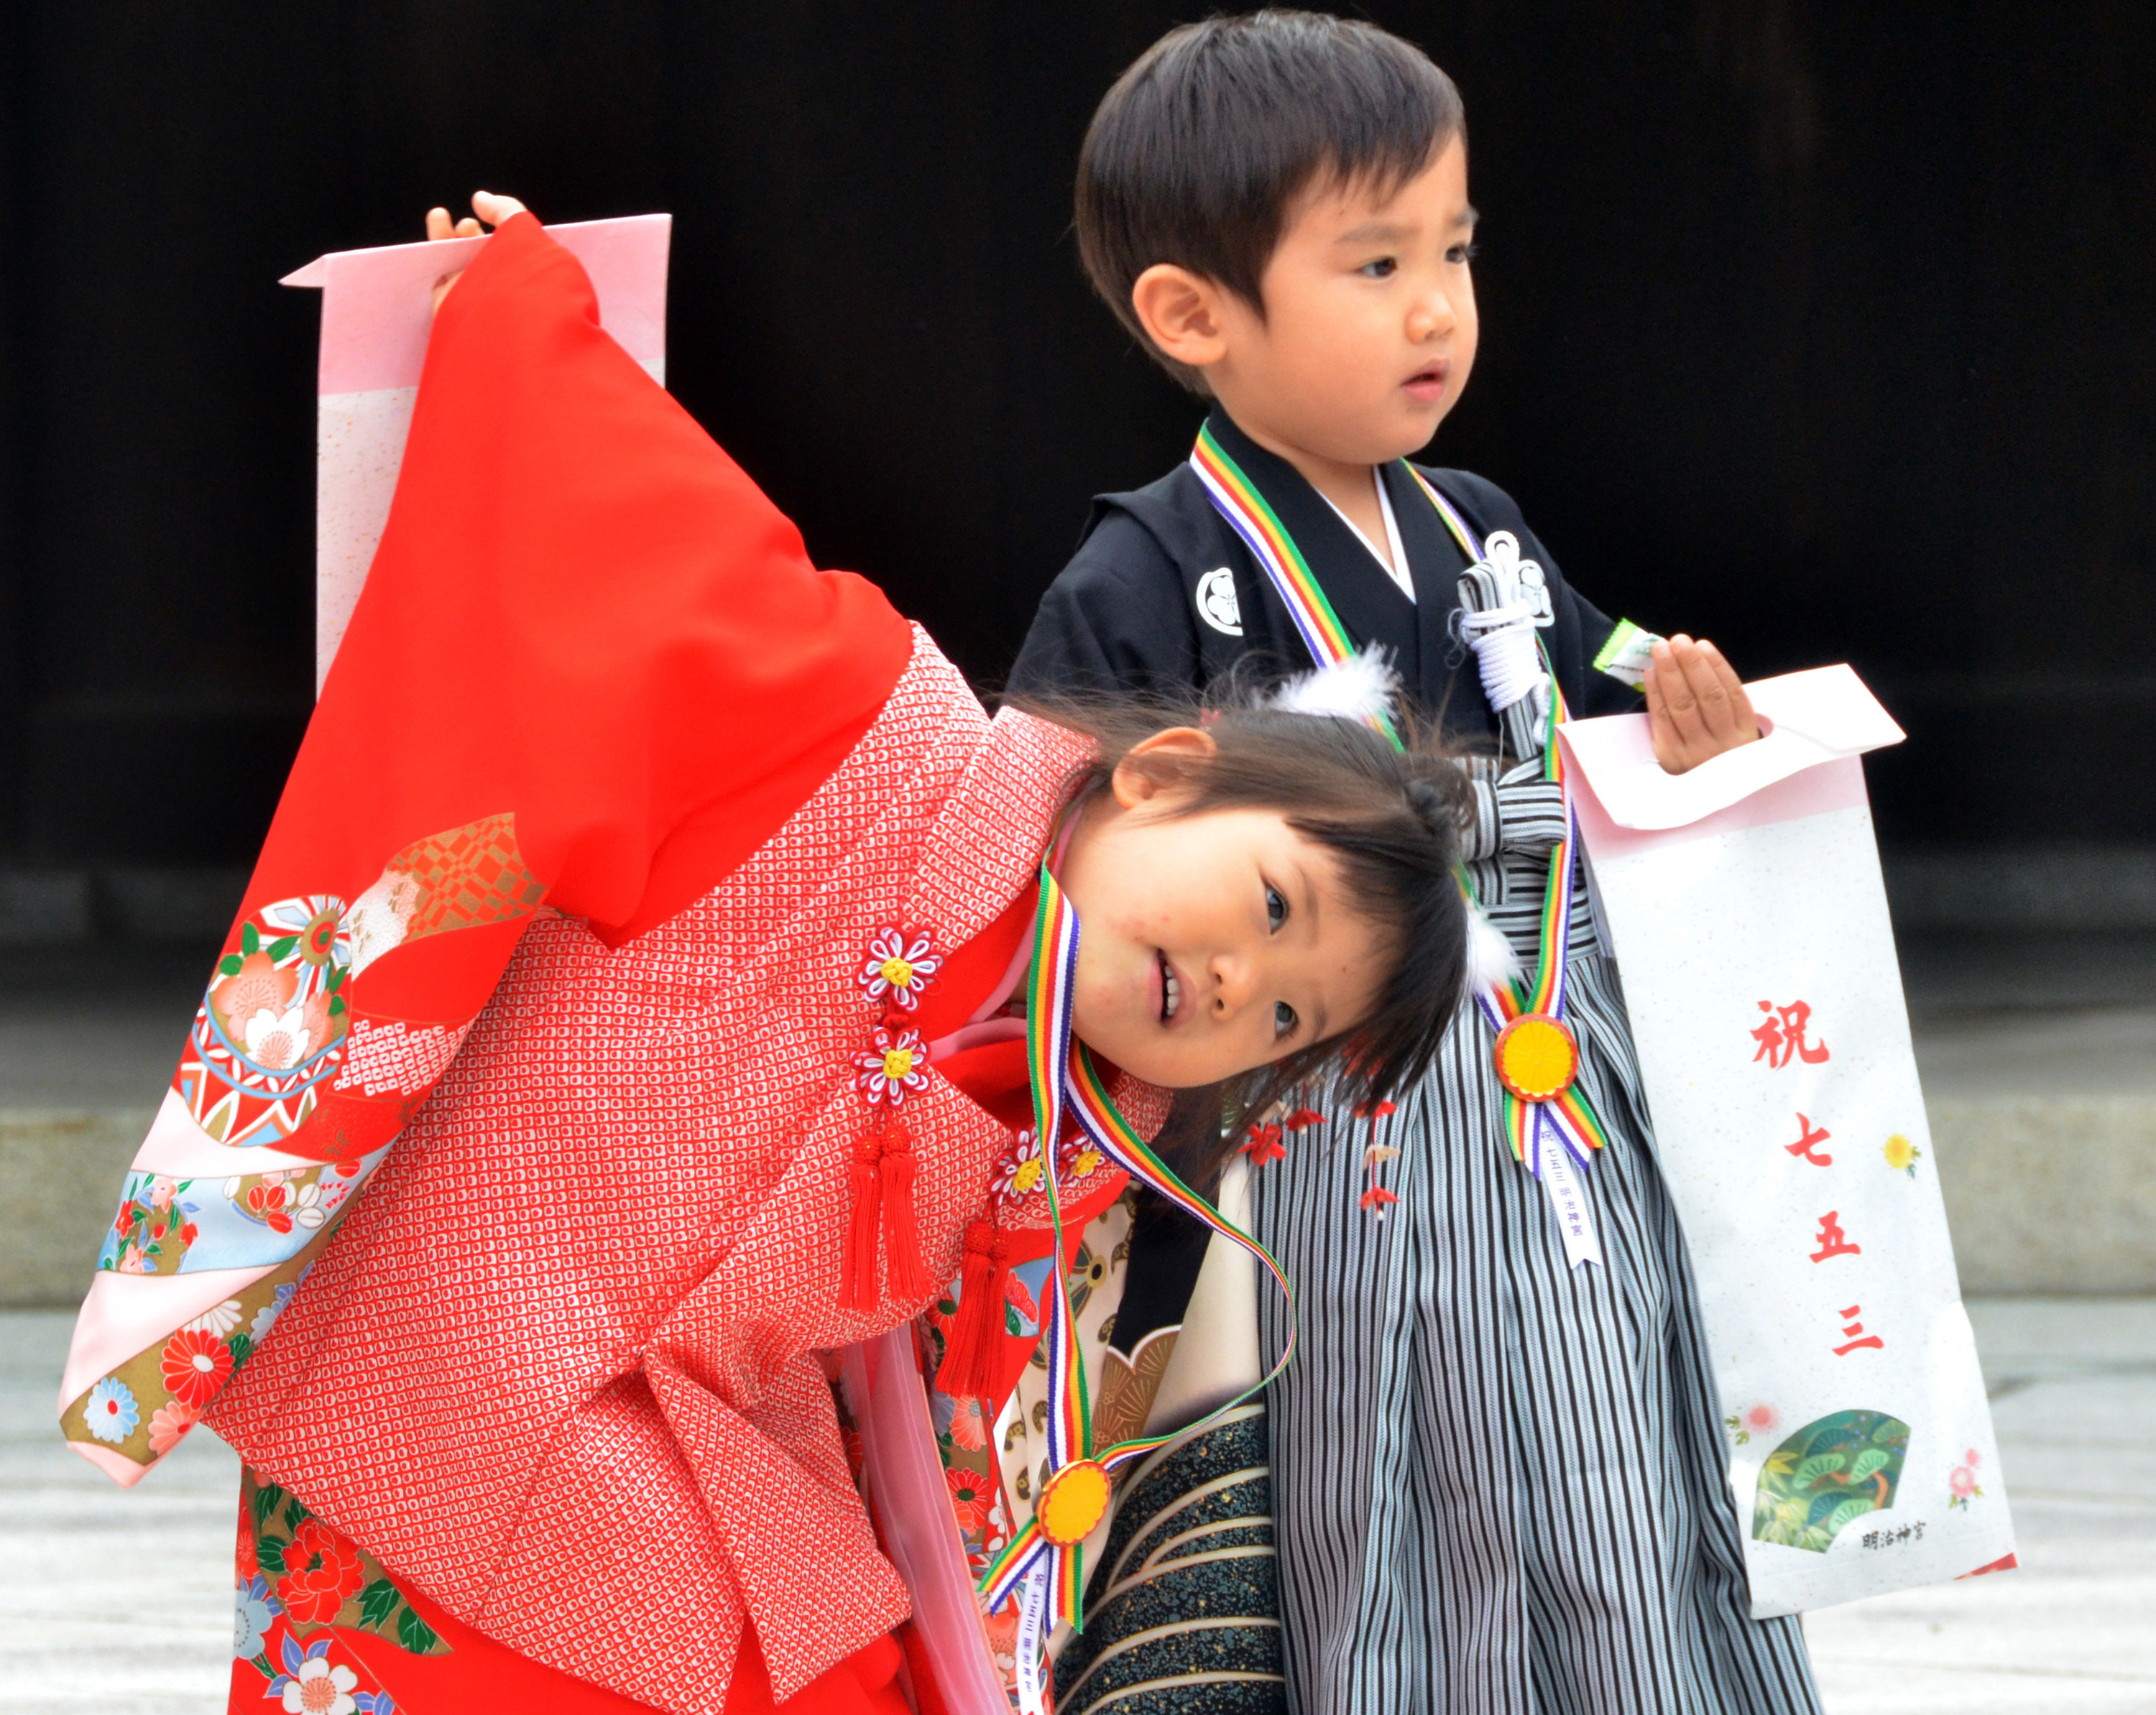 Japaese children wear traditional gowns